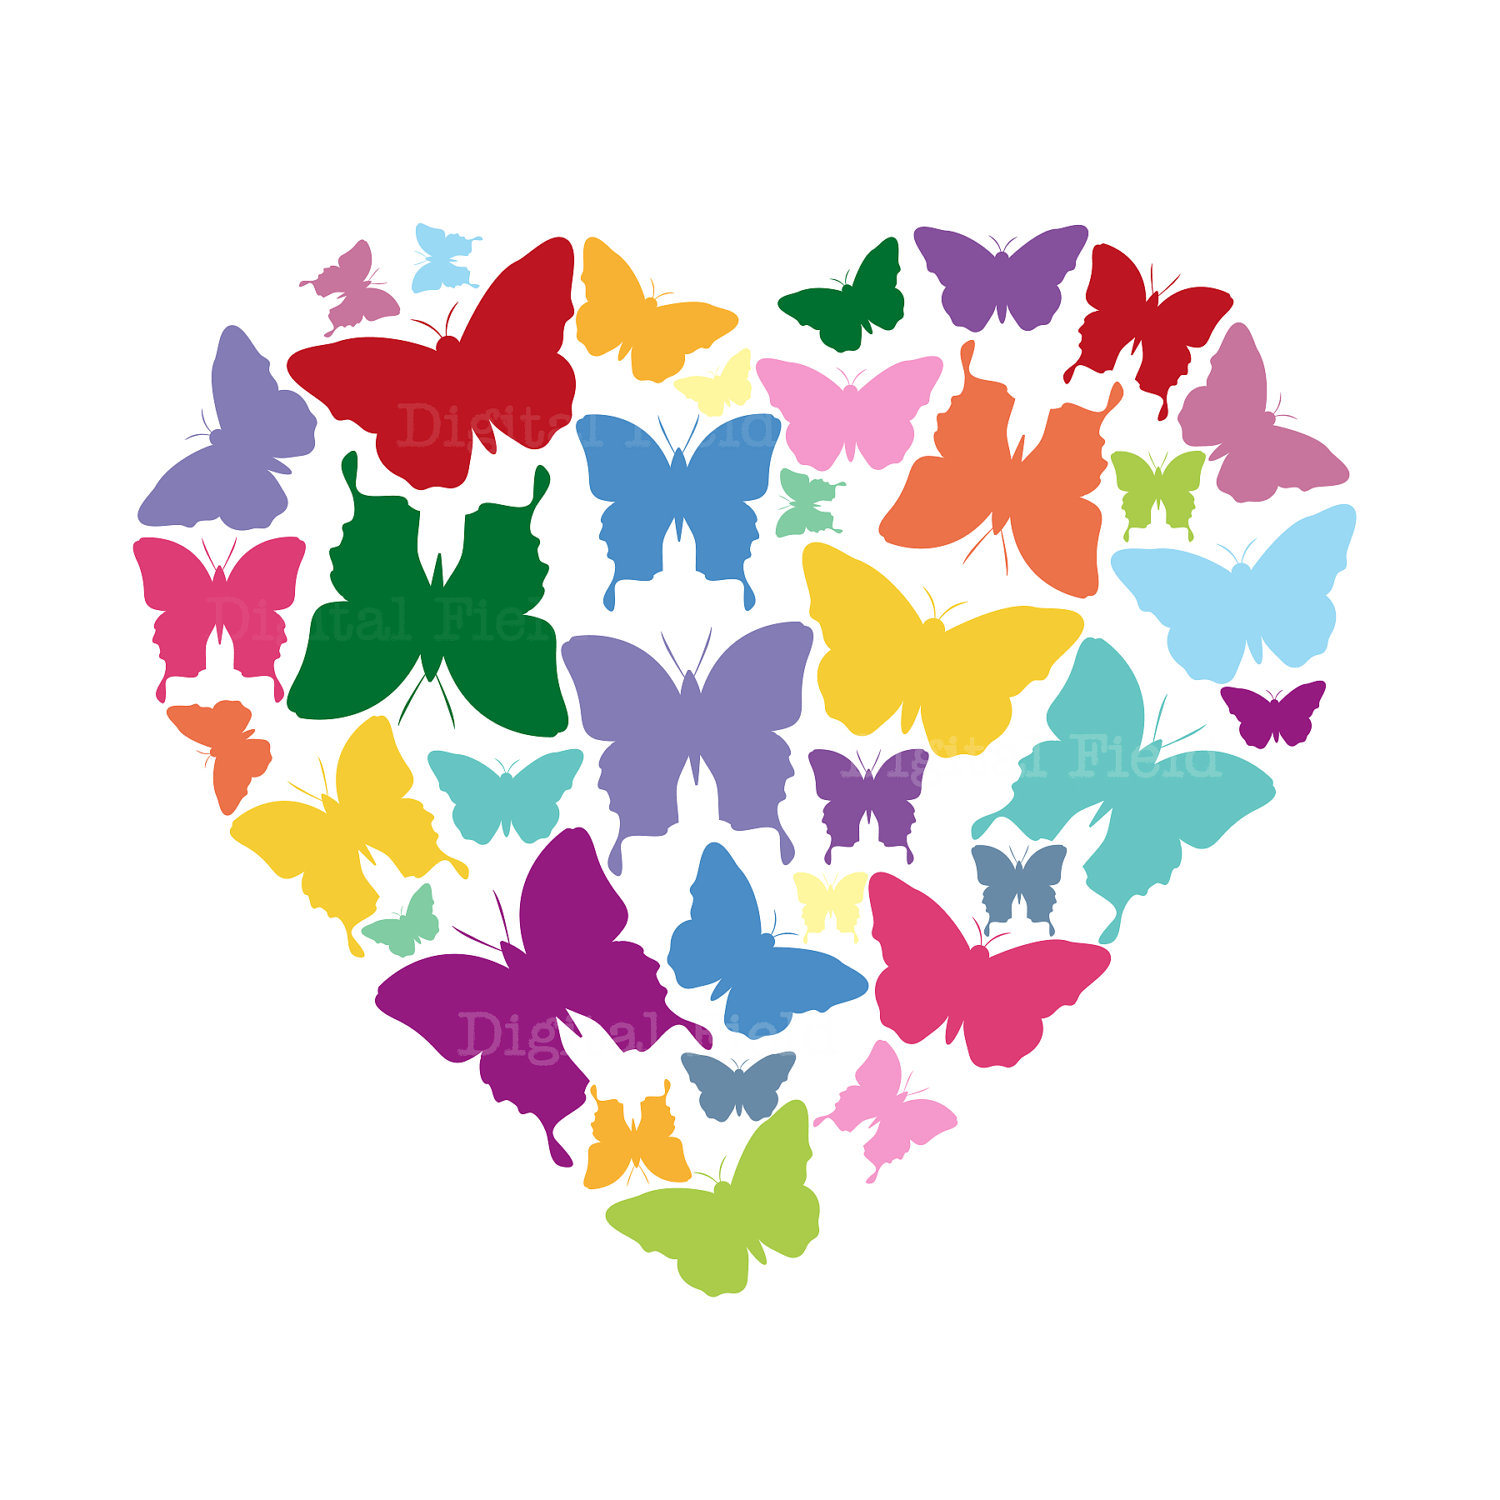 Butterfly hearts clipart banner stock Free butterfly hearts clipart - ClipartFest banner stock